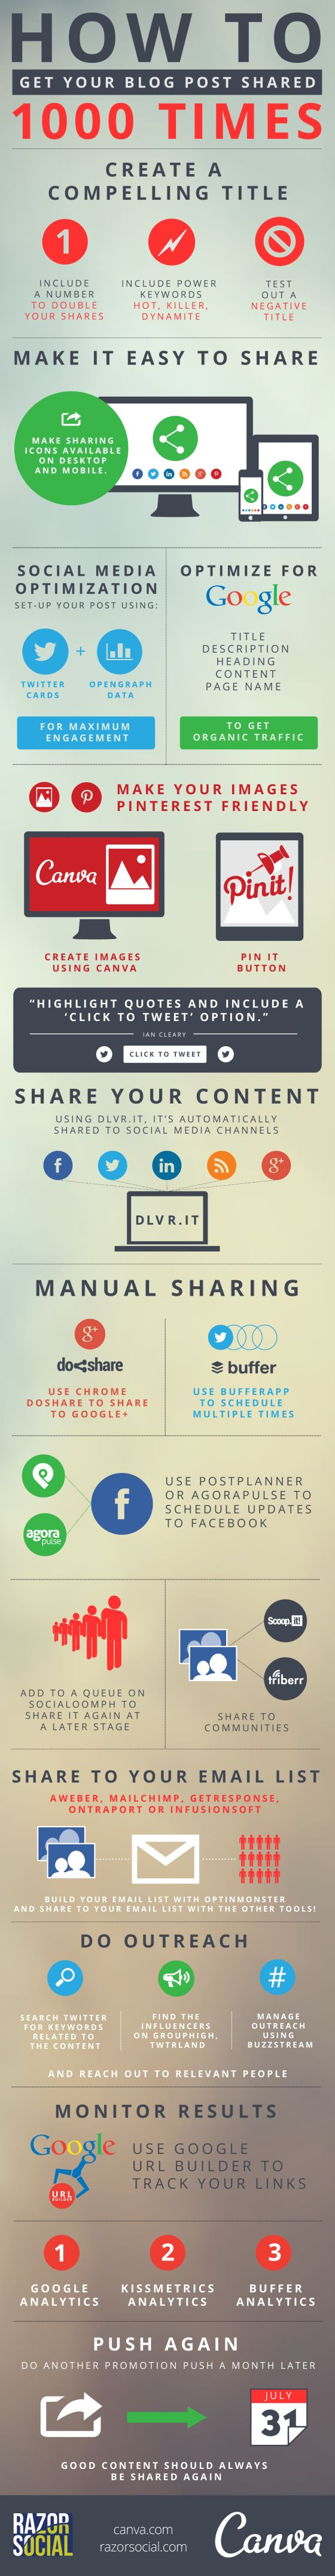 How to get your #blog post shared 1000 times via #Canva and #RazorFish